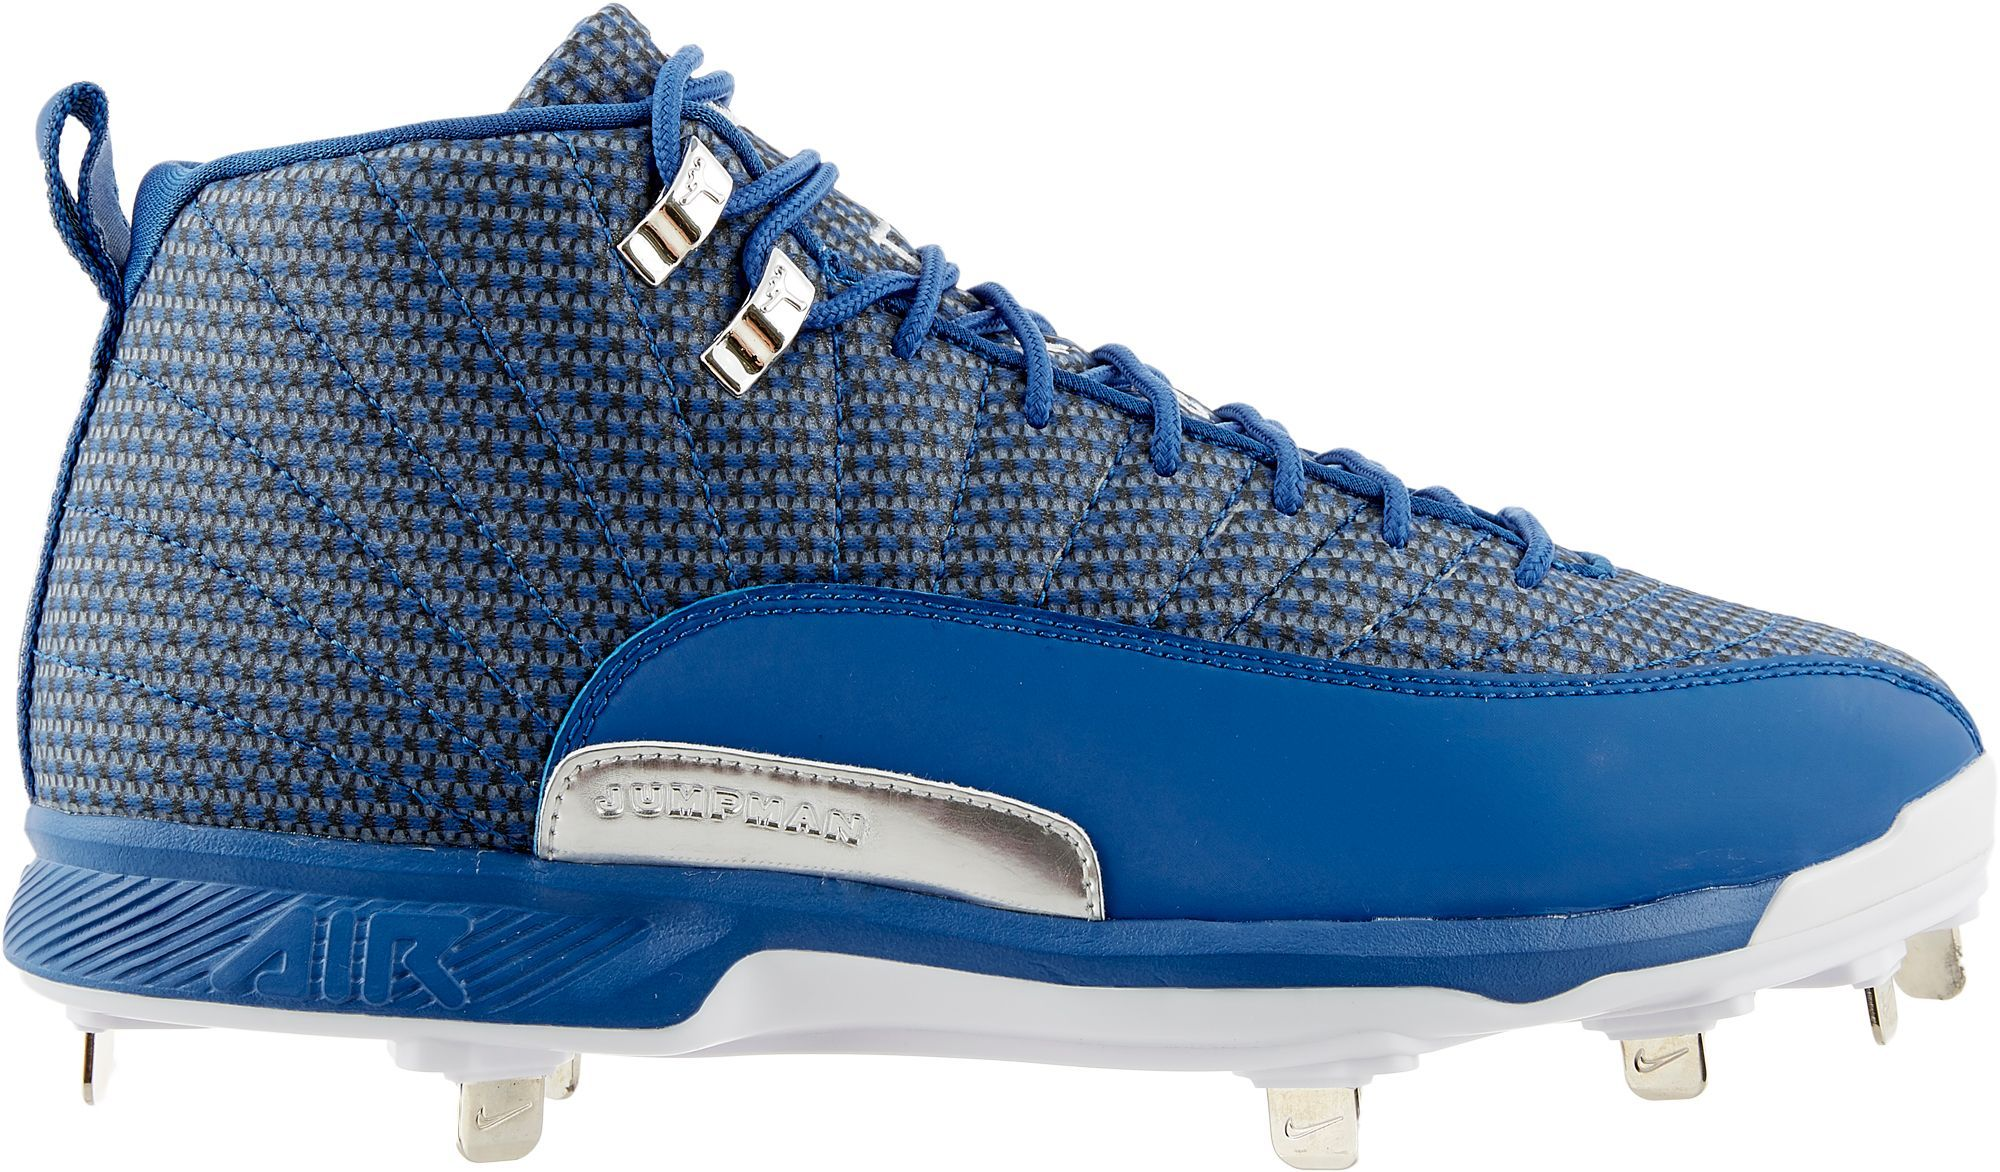 competitive price c21bd 617fe Jordan Men s XII Retro Metal Baseball Cleats, Size  16, Blue